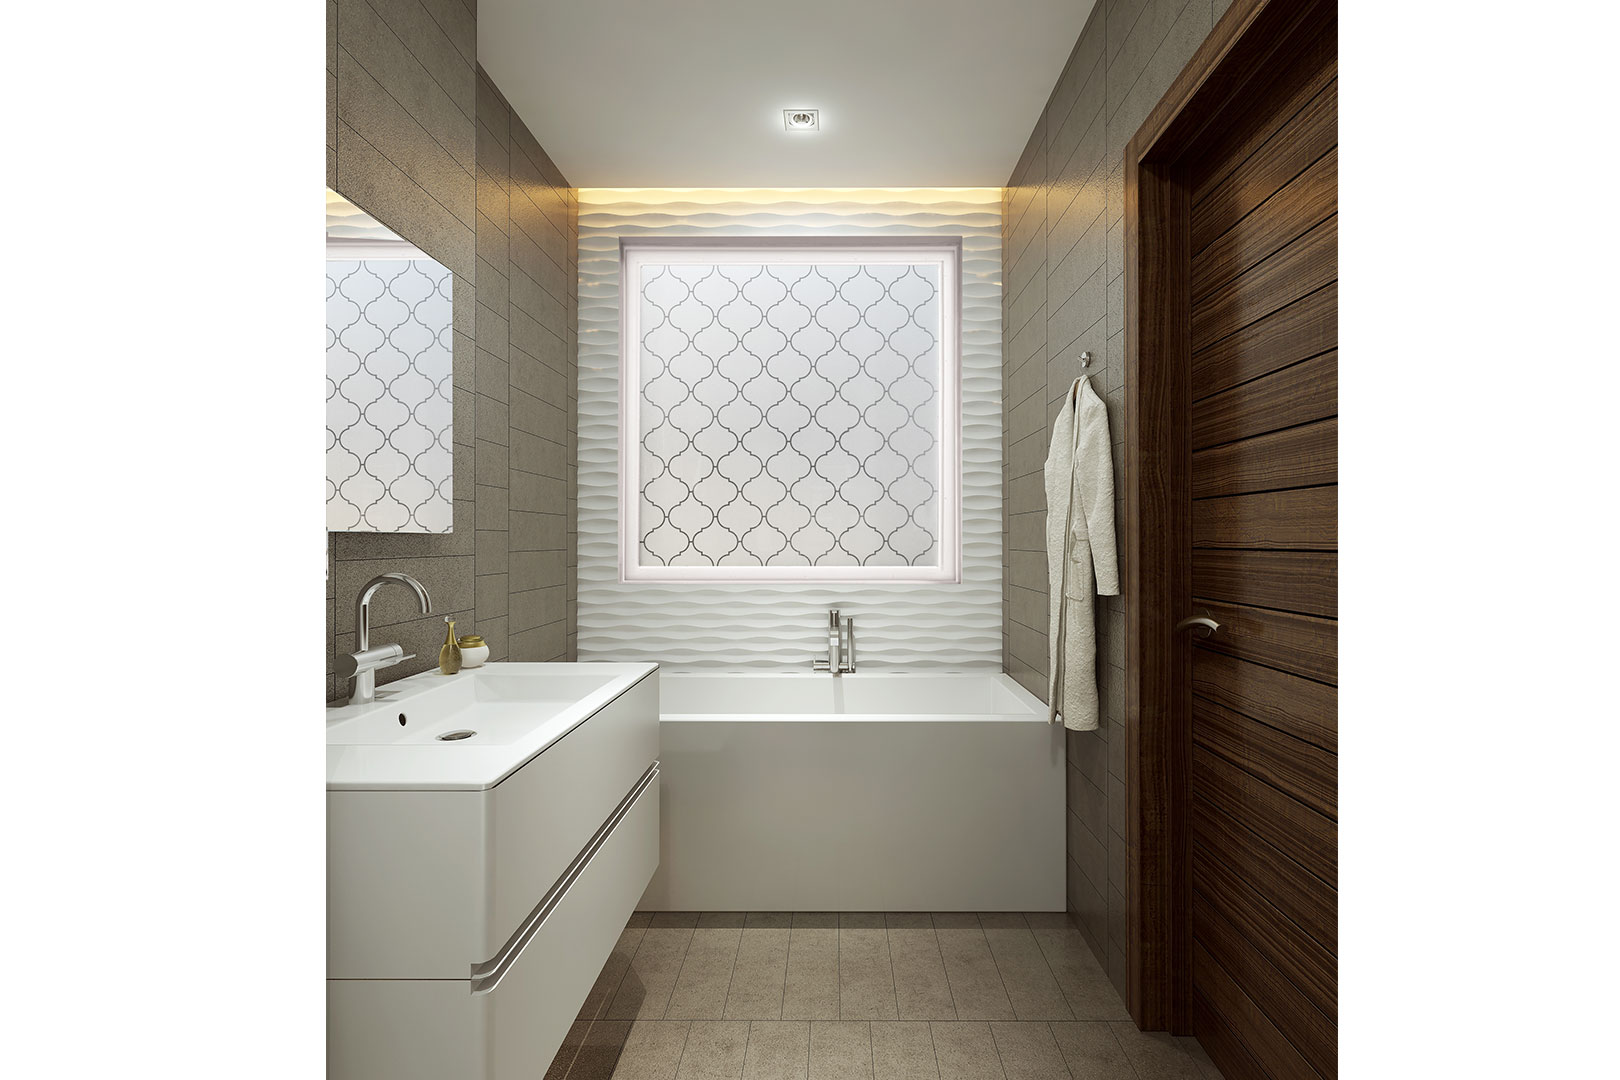 Hy lite a us block windows company baroque 4 x 4 in master bath dailygadgetfo Image collections